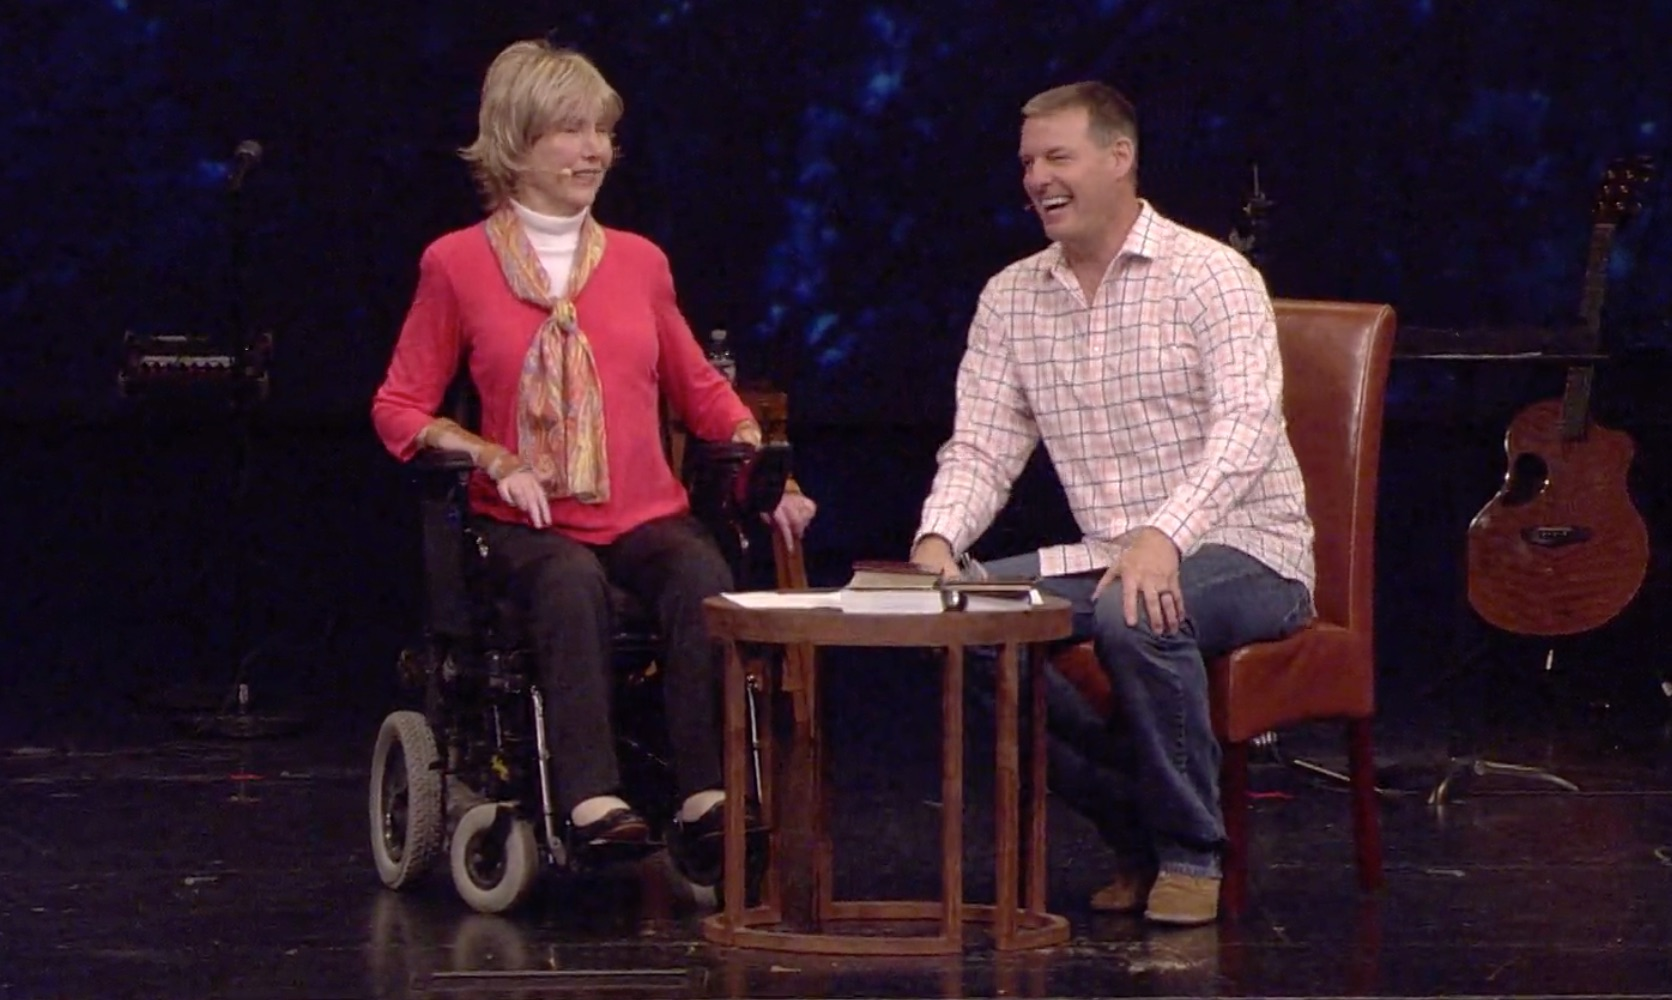 A Spectacle of Glory: An Interview with Joni Eareckson Tada